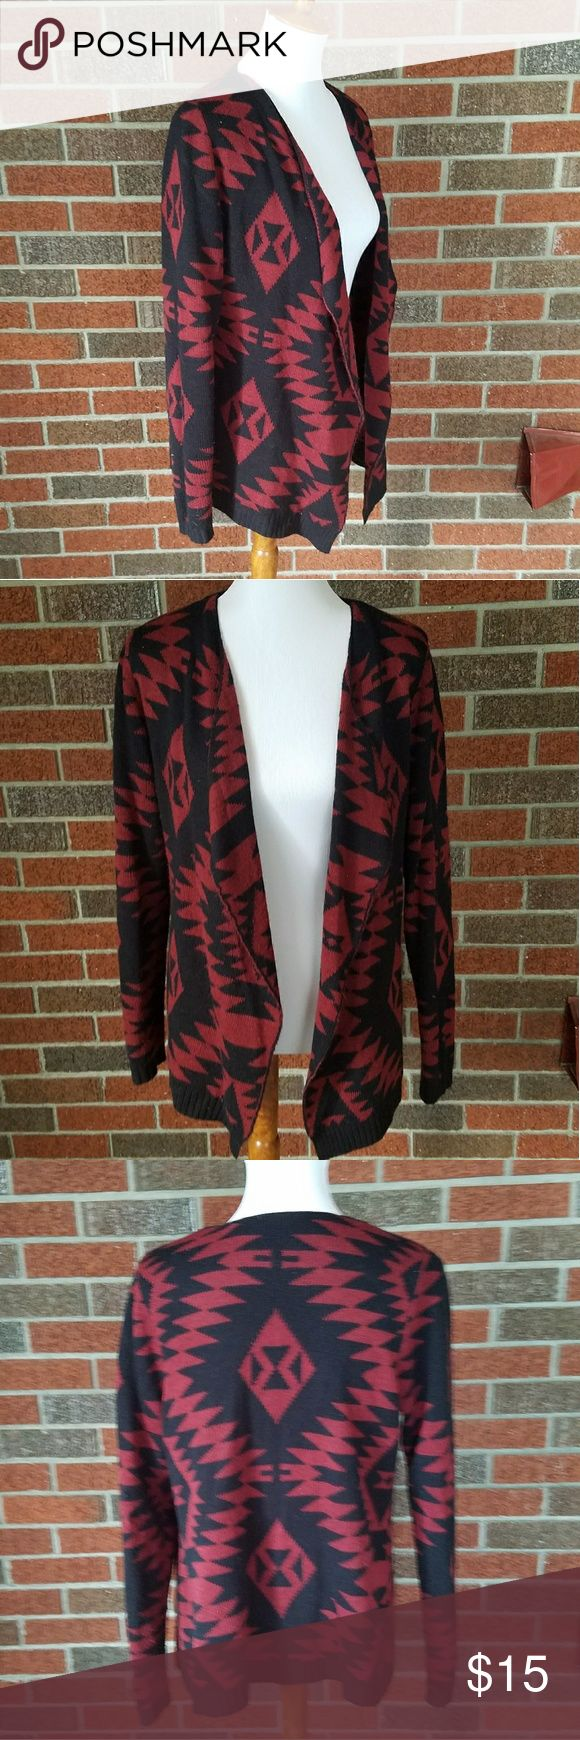 Red and Black Adam Levin Tribal Print Cardigan Gently worn black and red tribal print design. Adam Levin size large. Open front cardigan. Adam Levine Collection Sweaters Cardigans